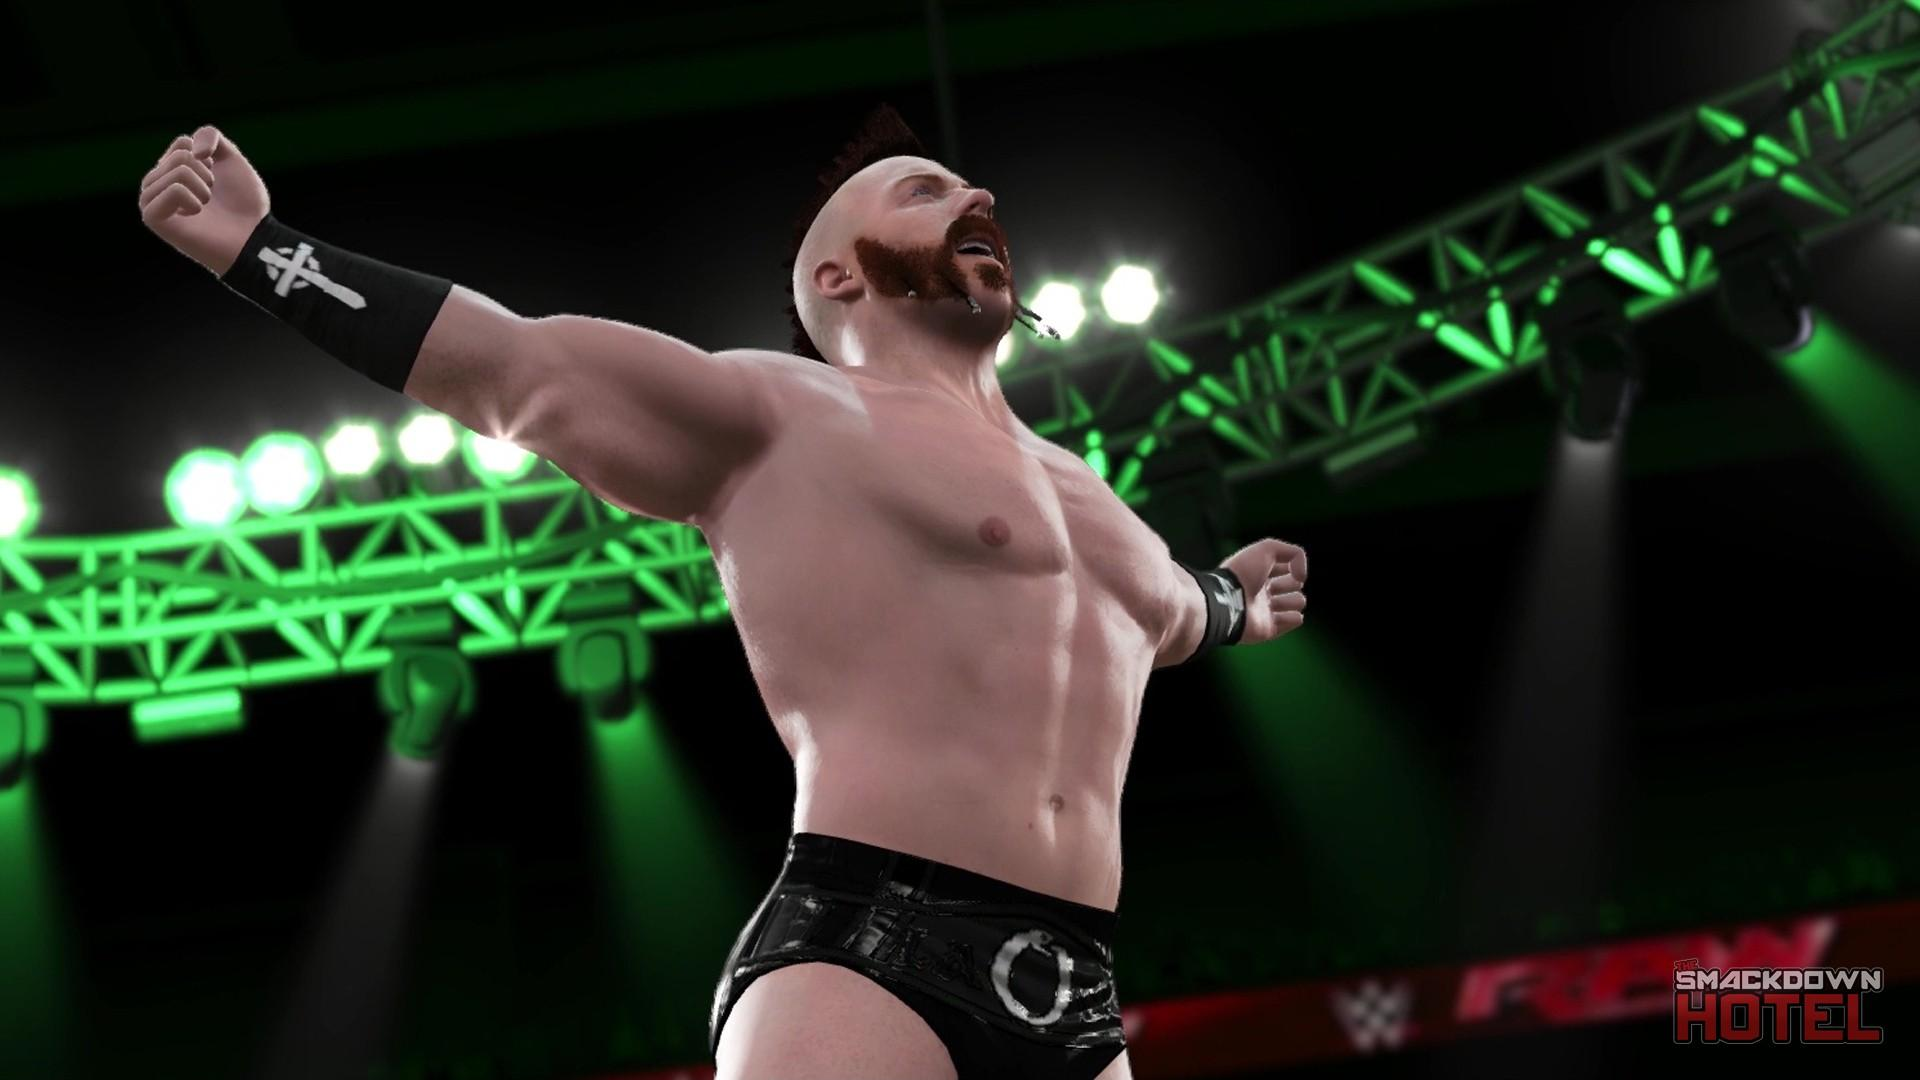 WWE2K16 Trailer Sheamus